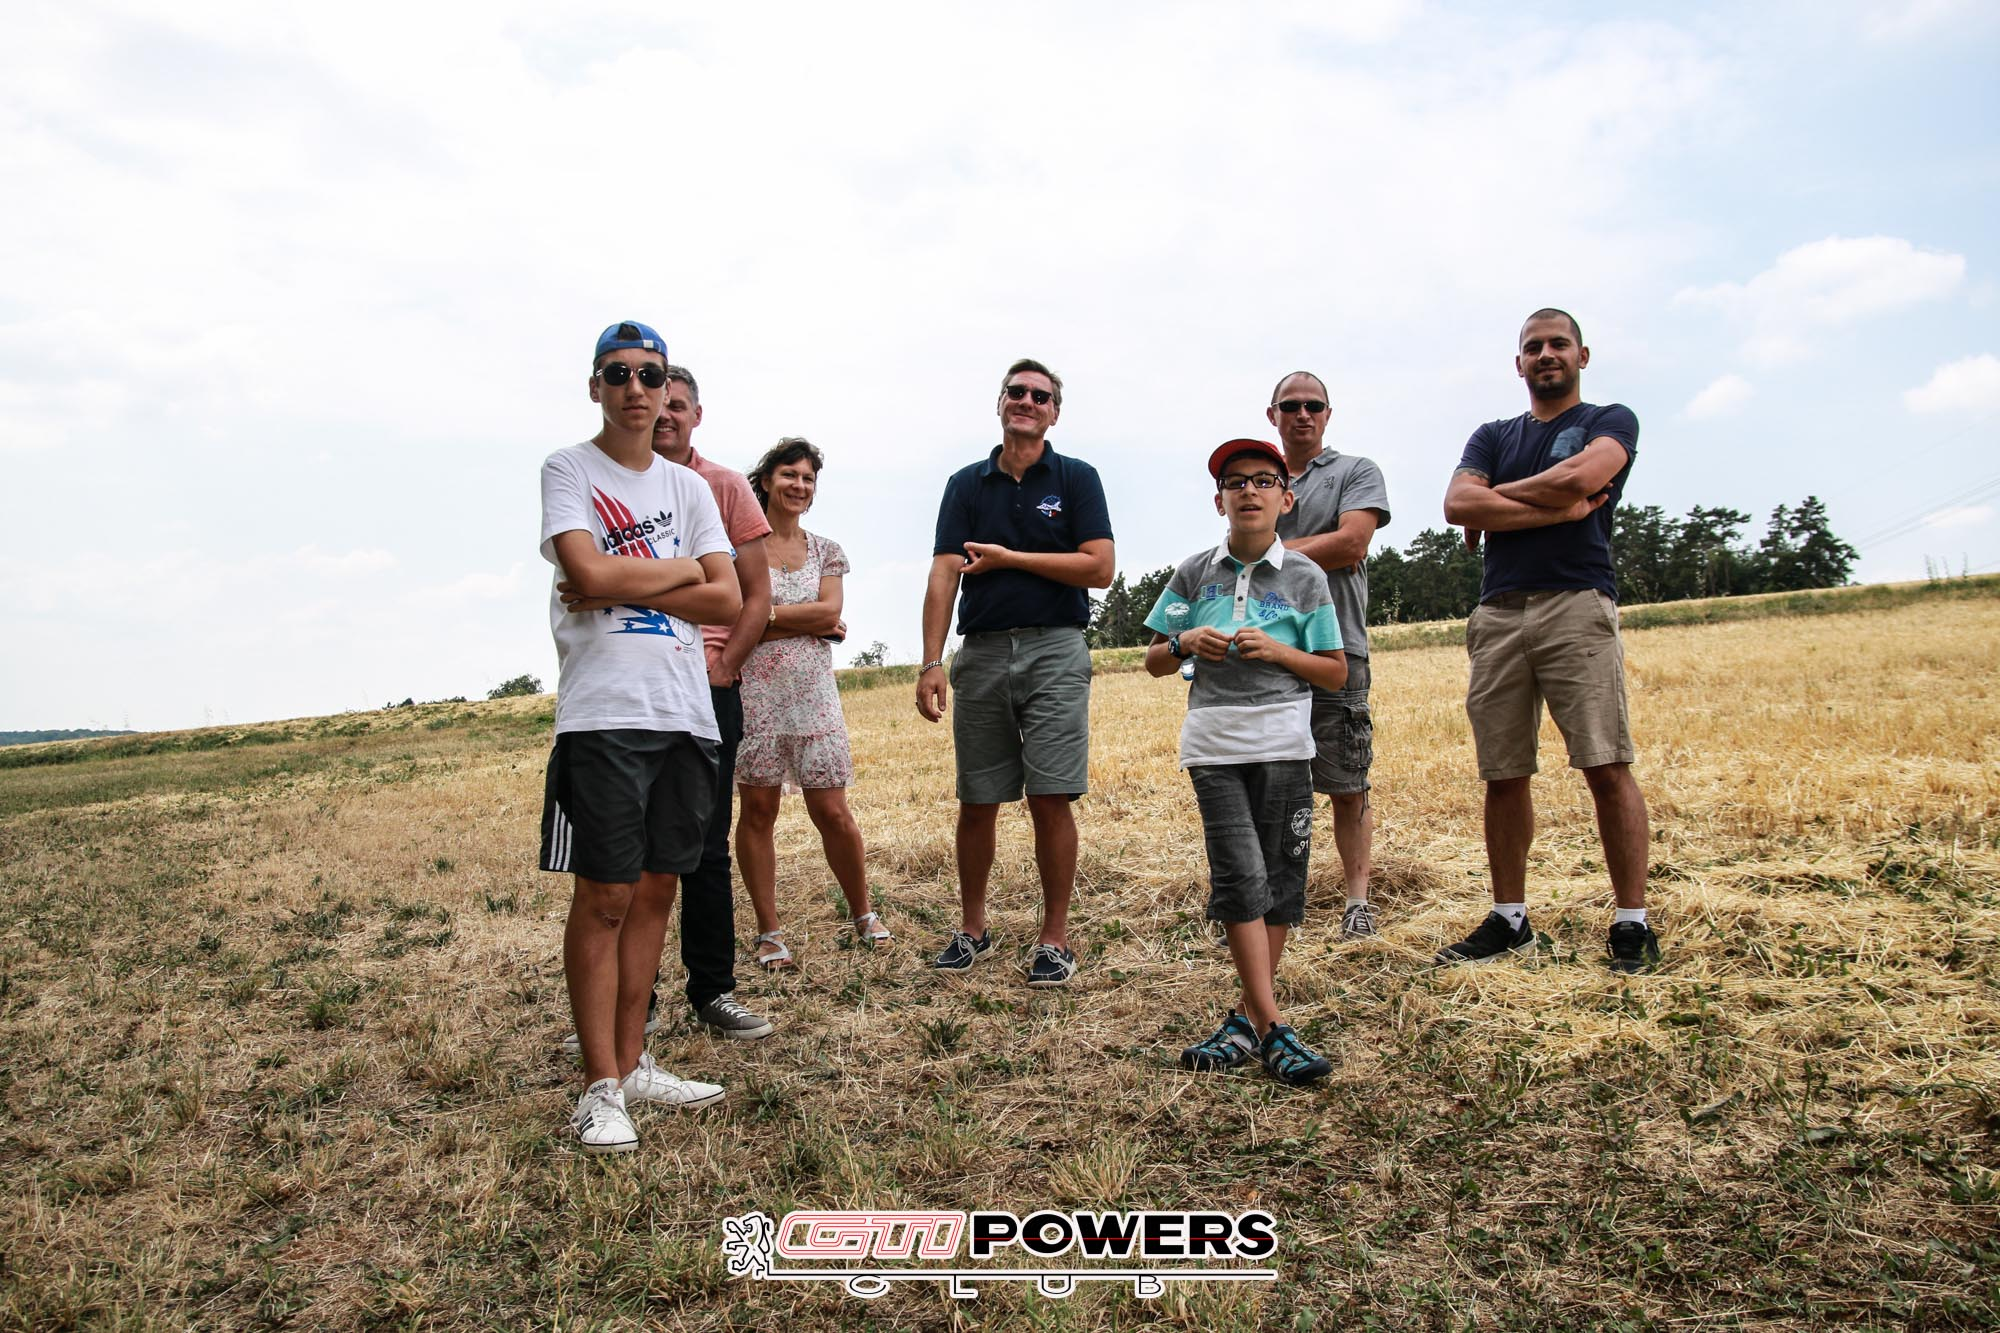 GTIPOWERS Day PAM - Dimanche 22 Juillet 2018 Gtipow48